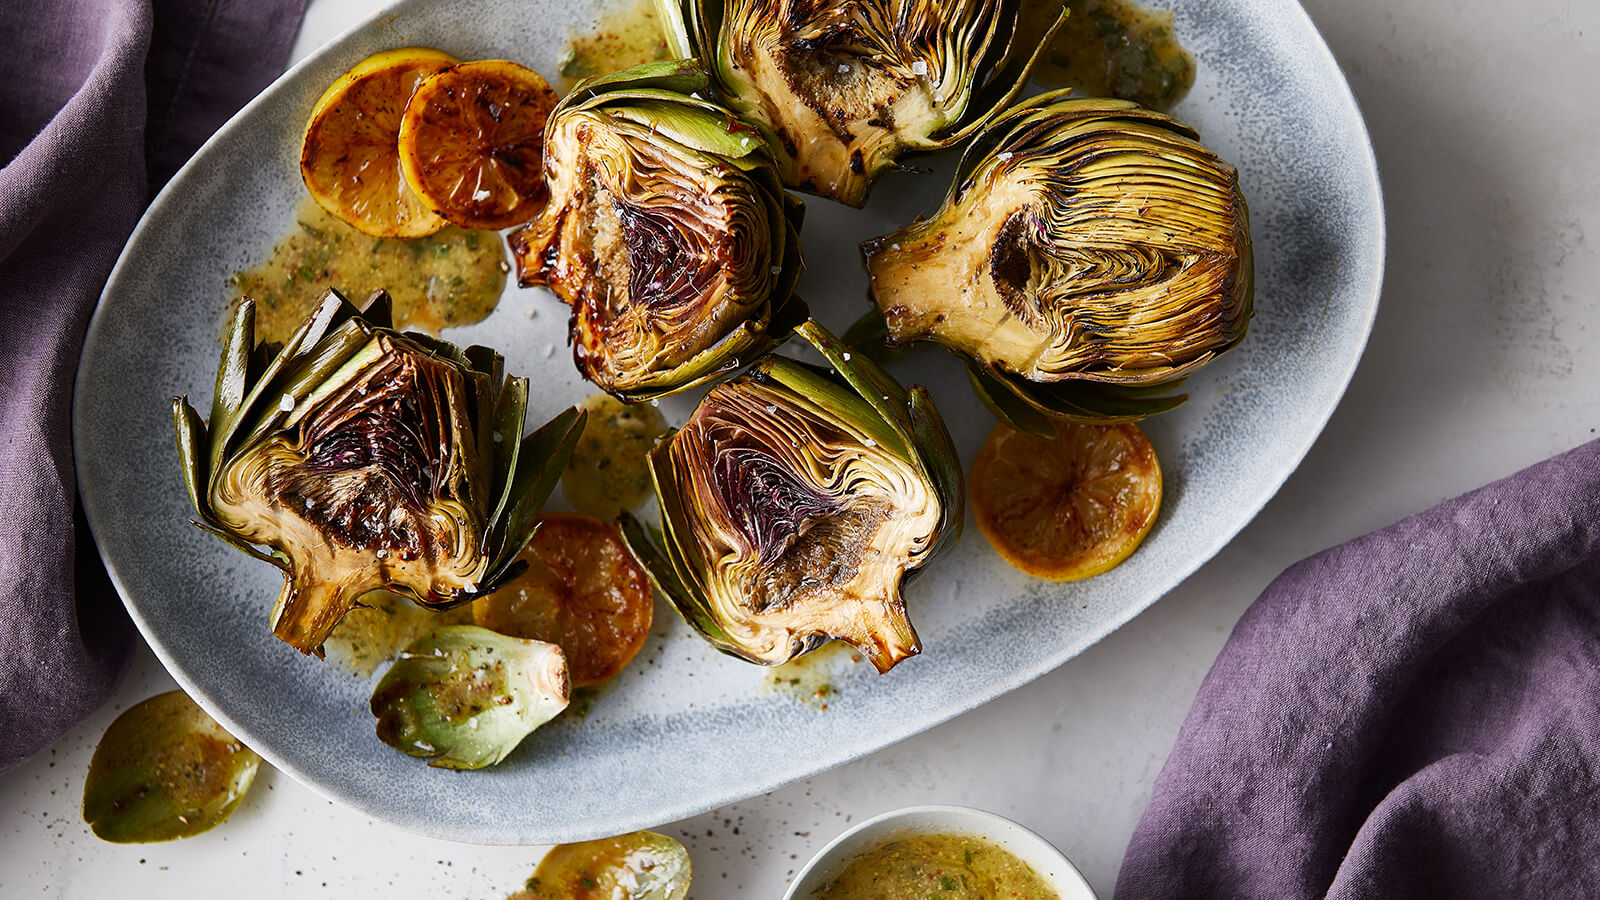 Giant Artichokes with Mustard Herb Vinaigrette